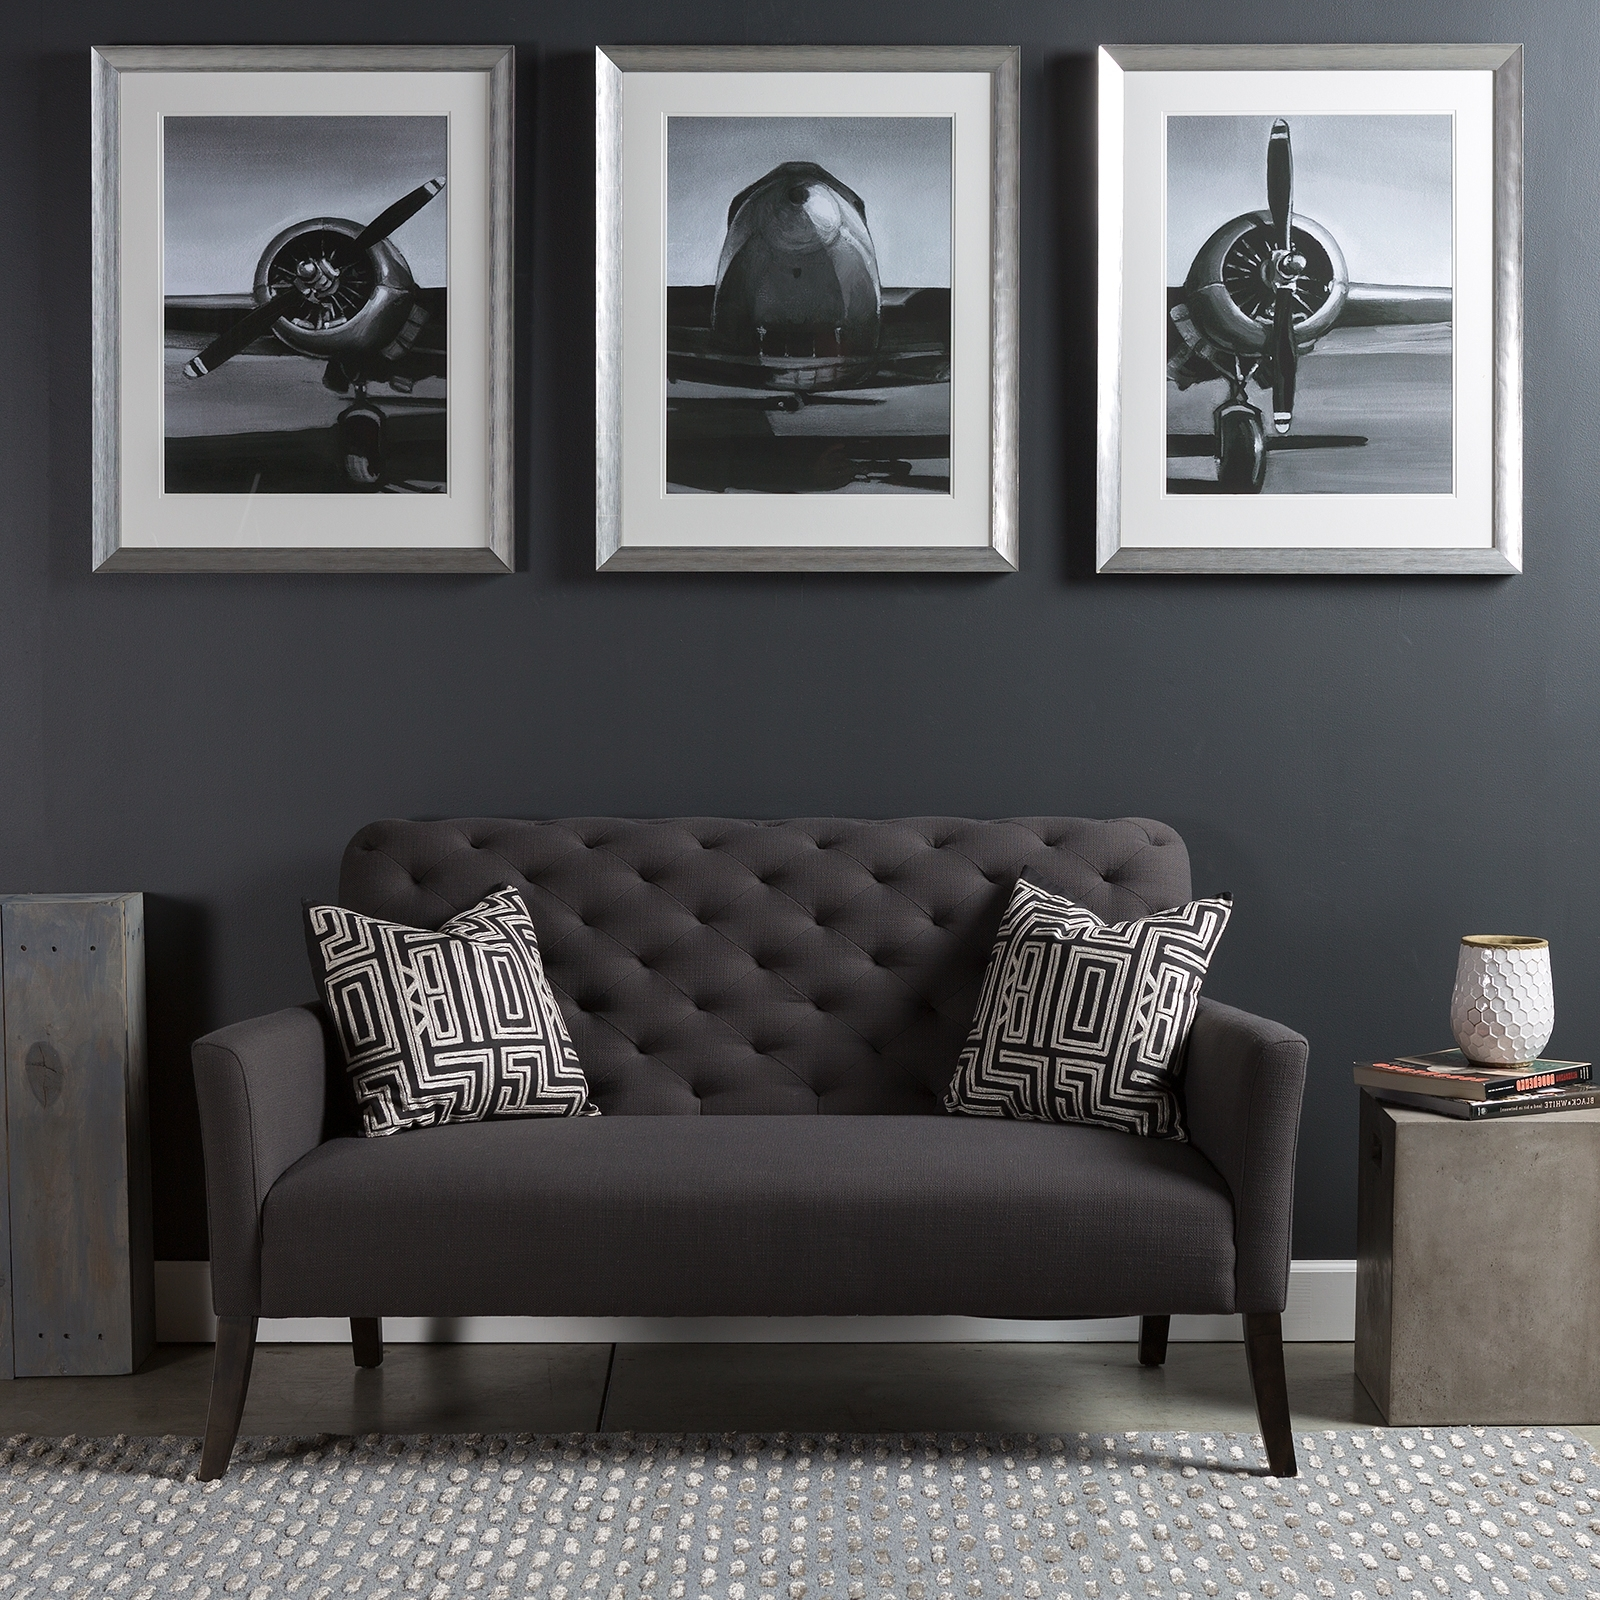 Large Triptych Wall Art With Recent Wall Art Designs: Aviation Wall Art Triptych Wall Art Piece With A (View 14 of 15)